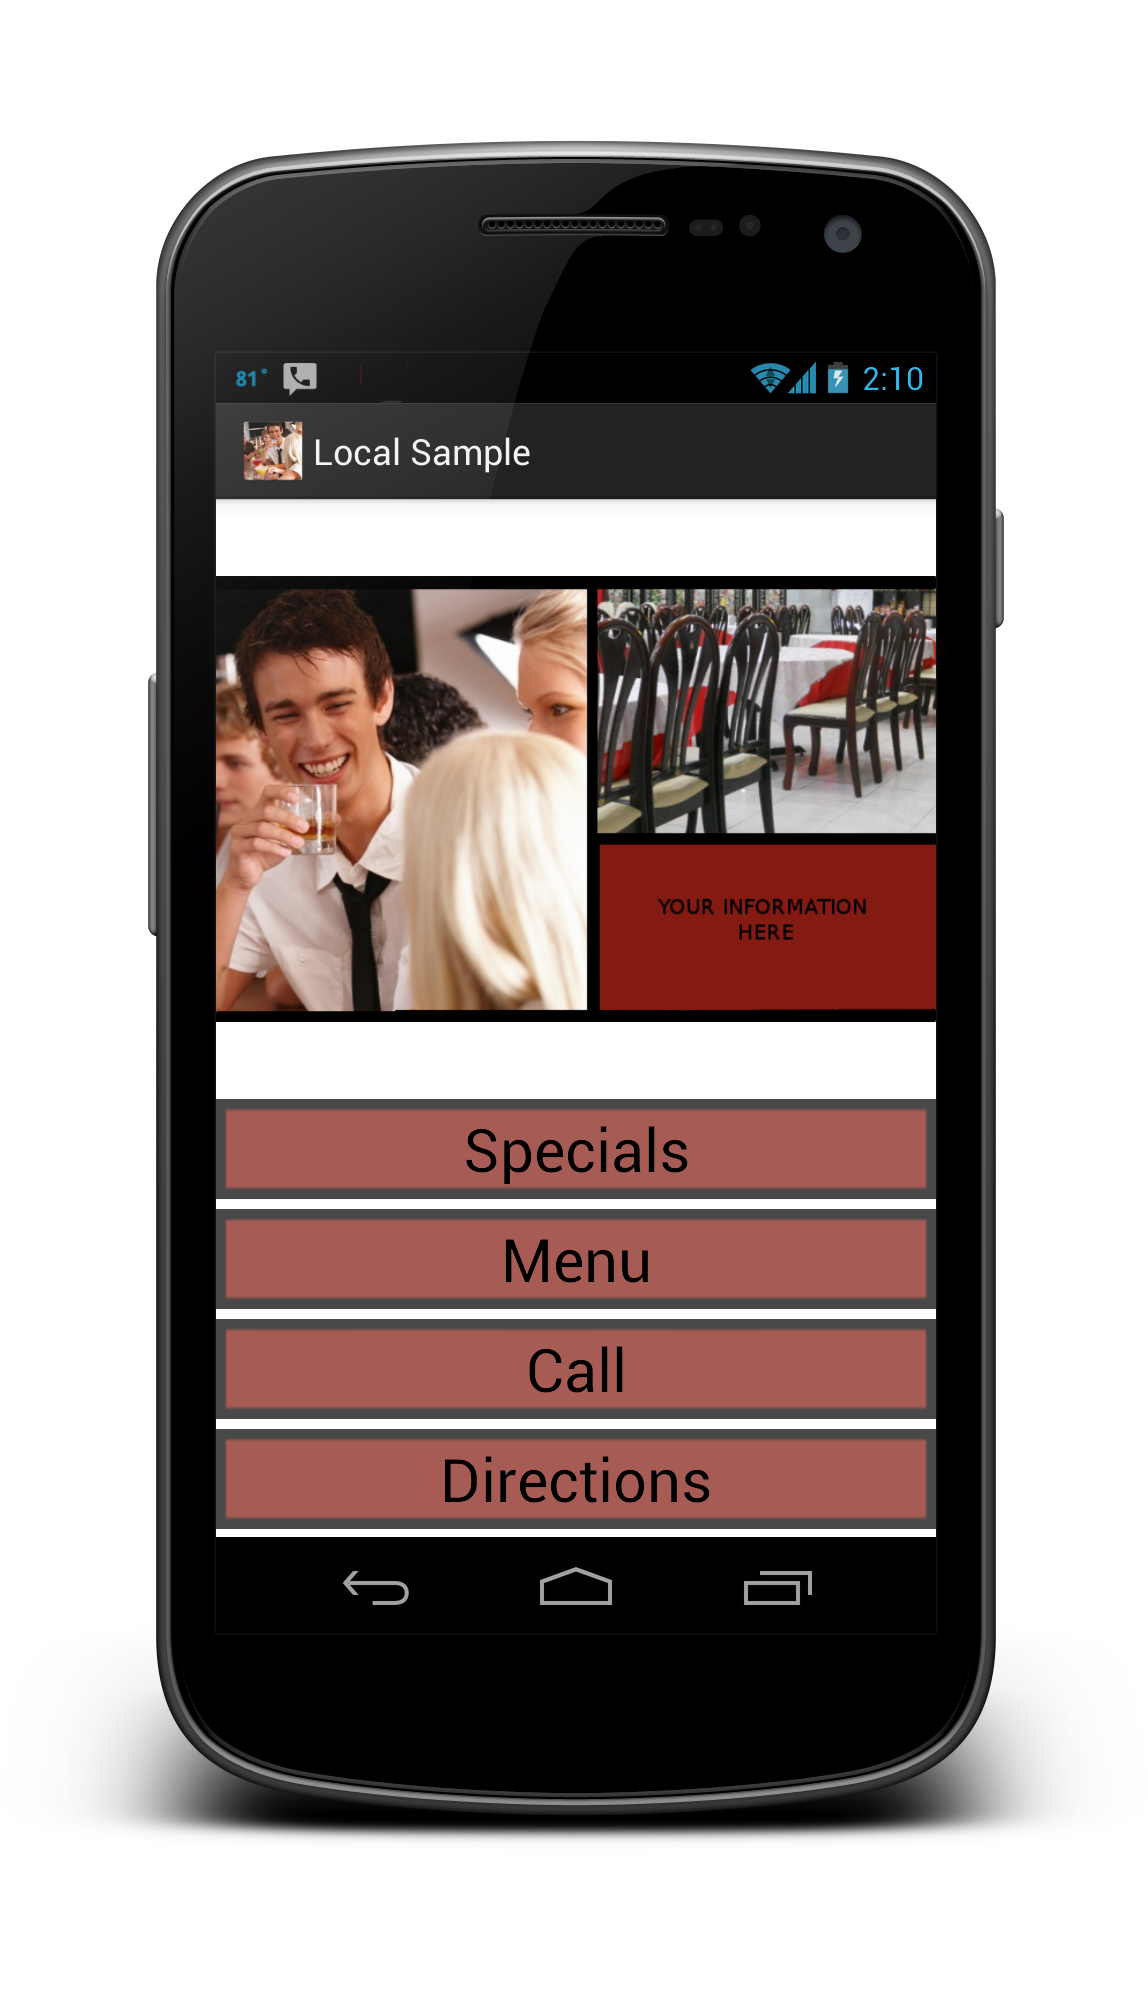 Turnkey Android App for Local Business